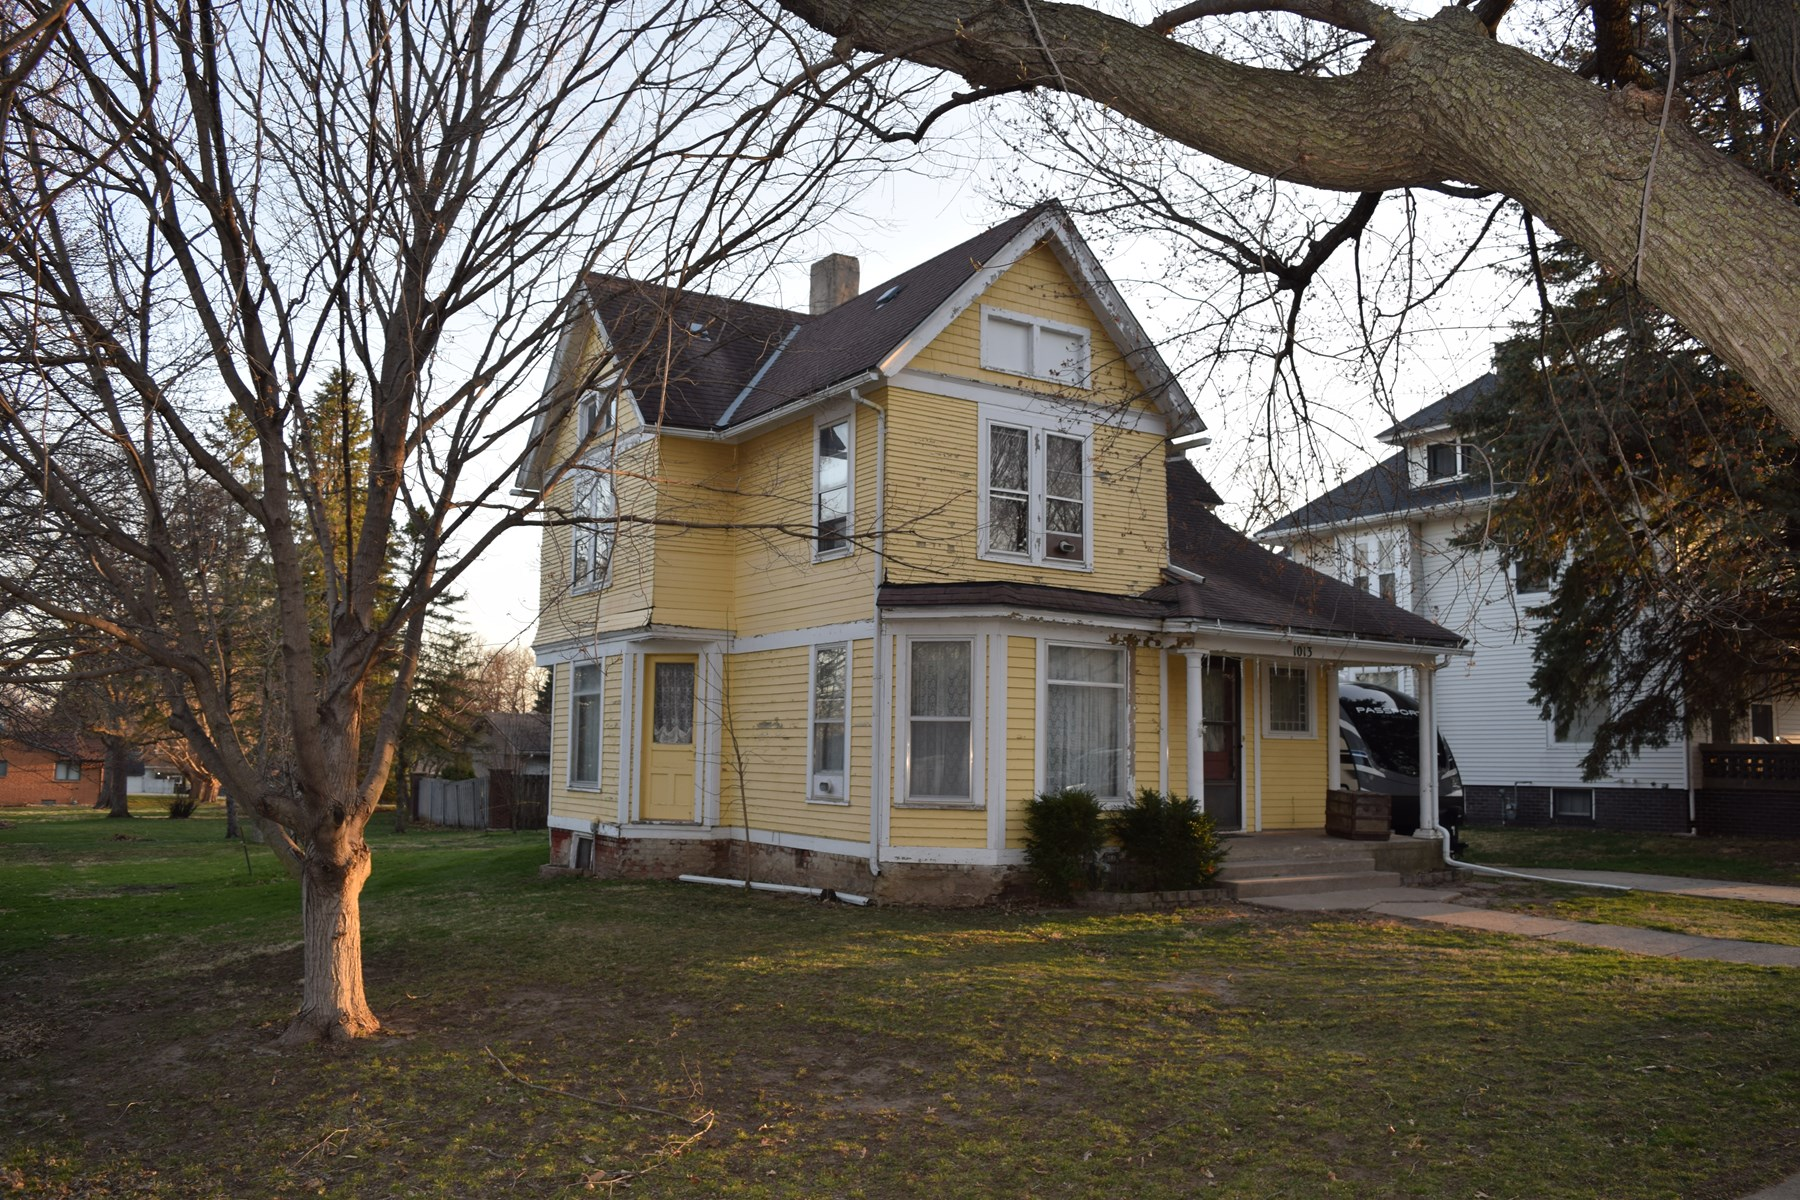 Victorian, 4 bedroom home in Harlan, Iowa , Shelby County